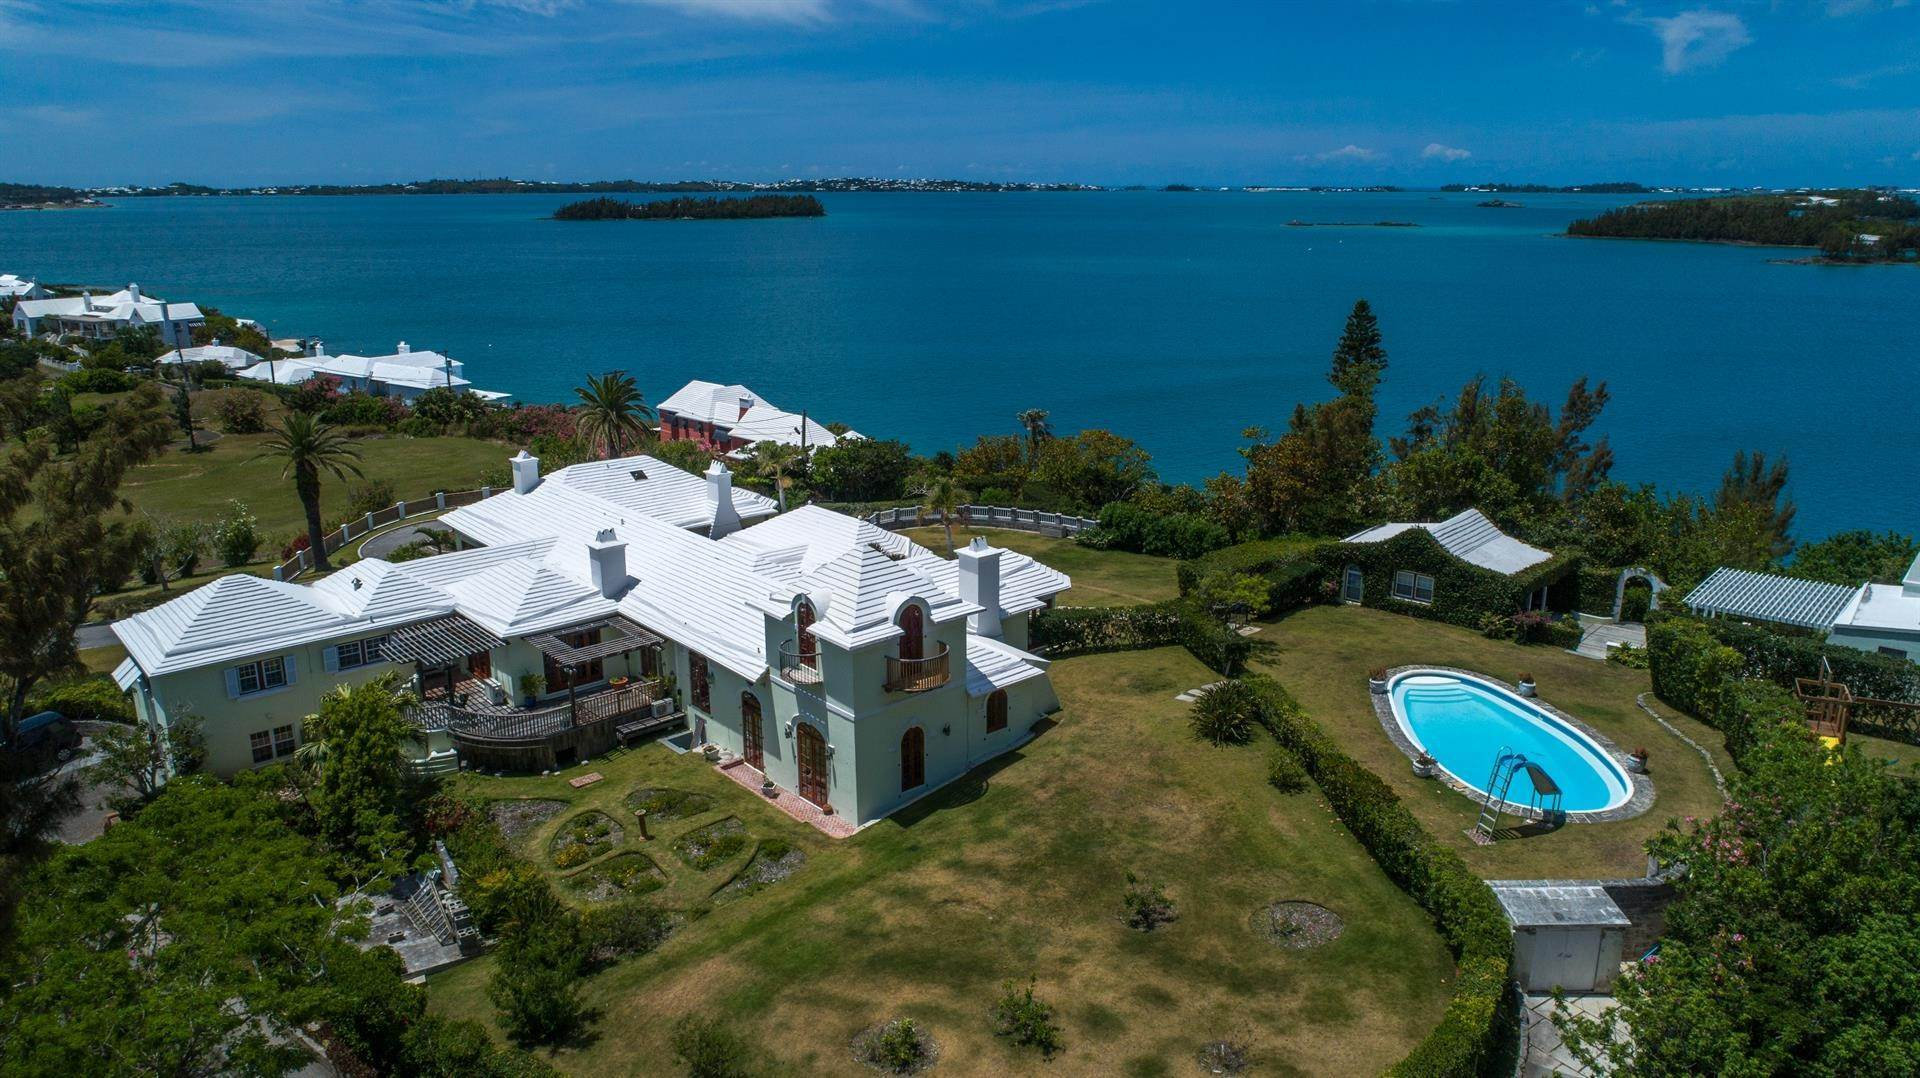 8. Vid Vattnet för Försäljning vid Heron Hill On The Great Sound Heron Hill On The Great Sound, 31 Riddell's Bay Road,Bermuda – Sinclair Realty